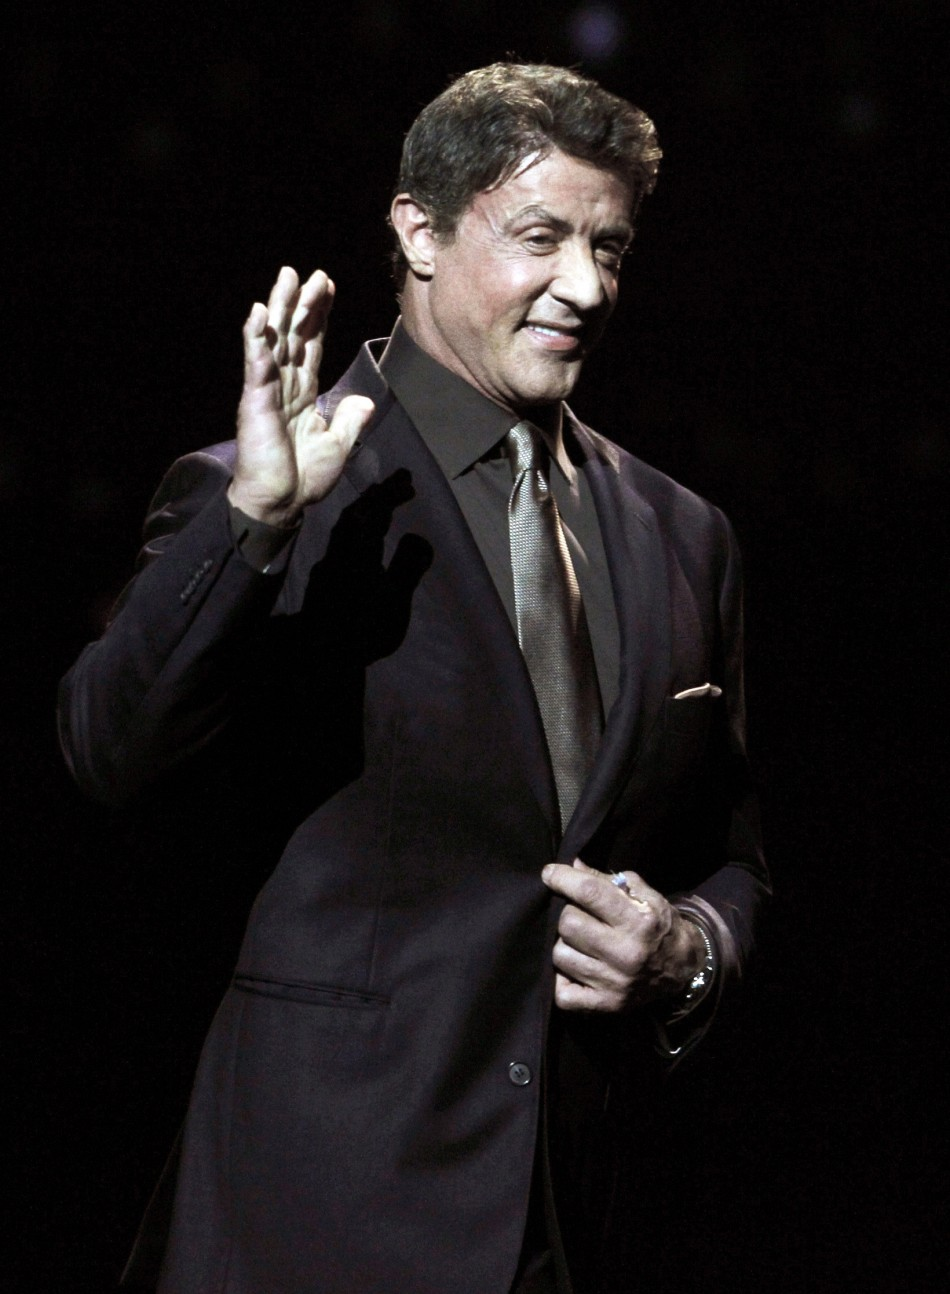 Actor Sylvester Stallone, recipient of the Career Achievement Award, arrives on stage during the CinemaCon Big Screen Achievement Awards show in Las Vegas